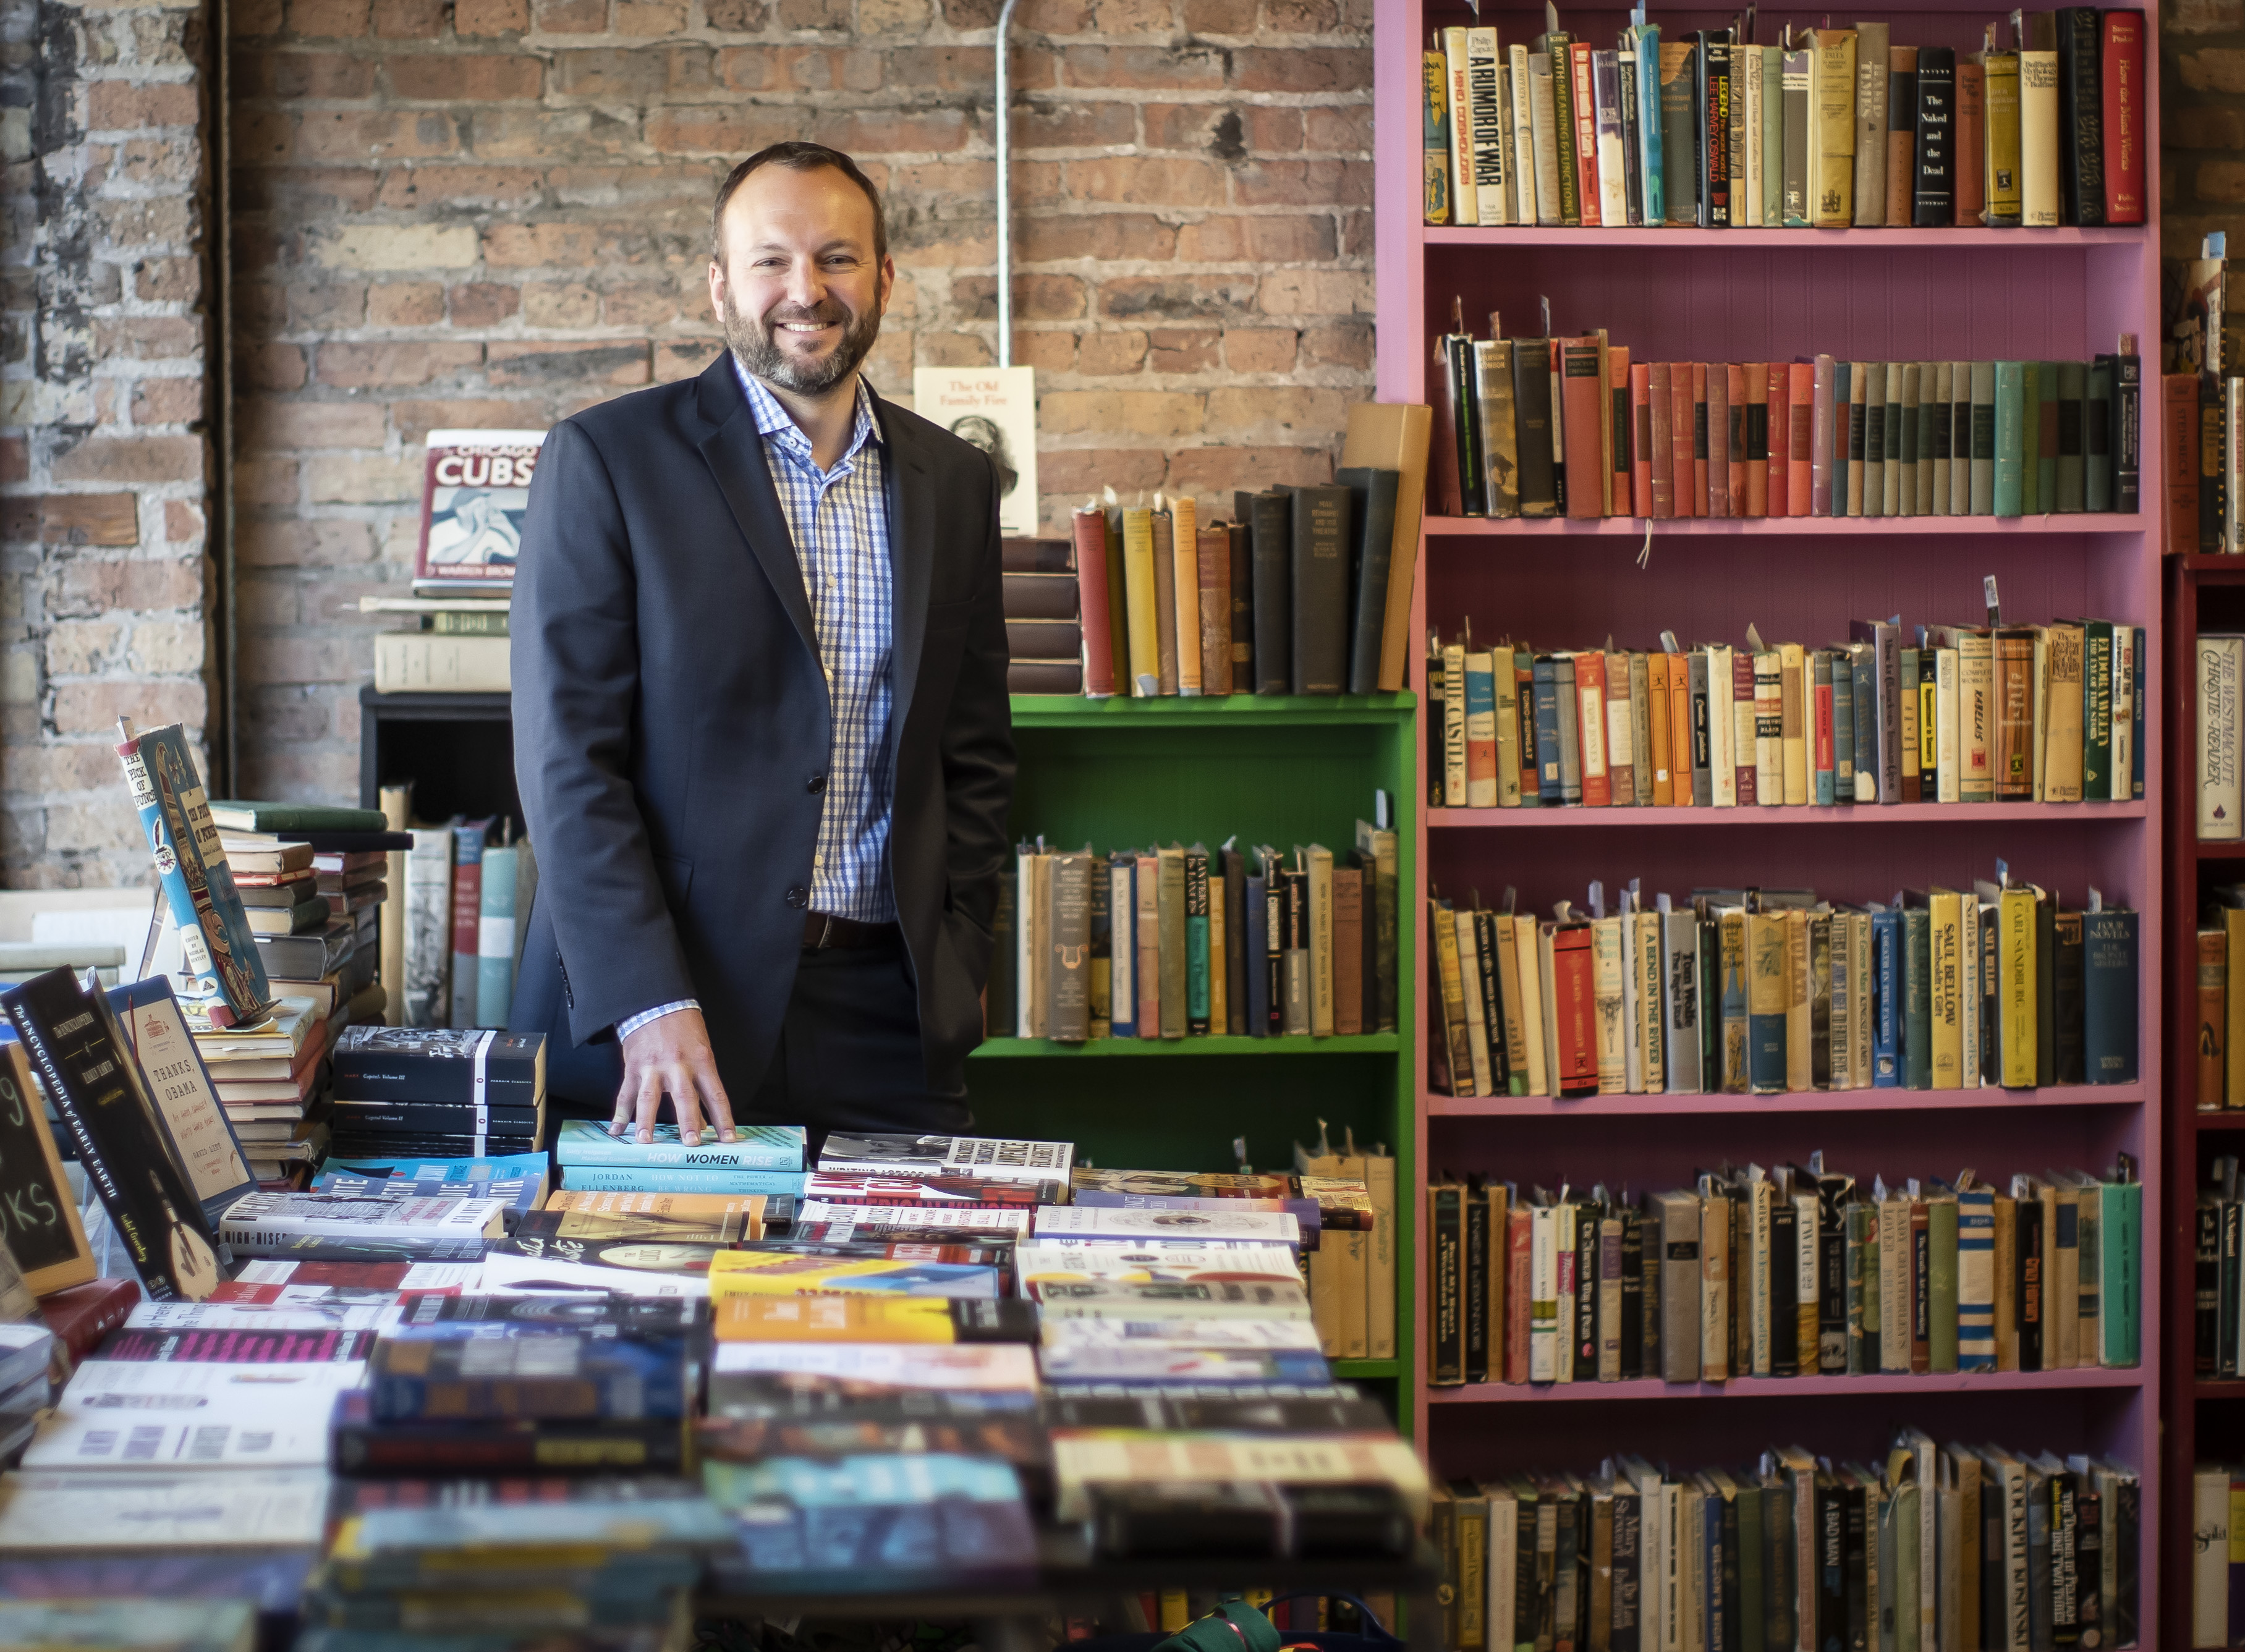 Eric B. Johnson is the executive director of OpenBooks/Imagination Library, which provides free books and literacy programs to underserved children in Chicago.